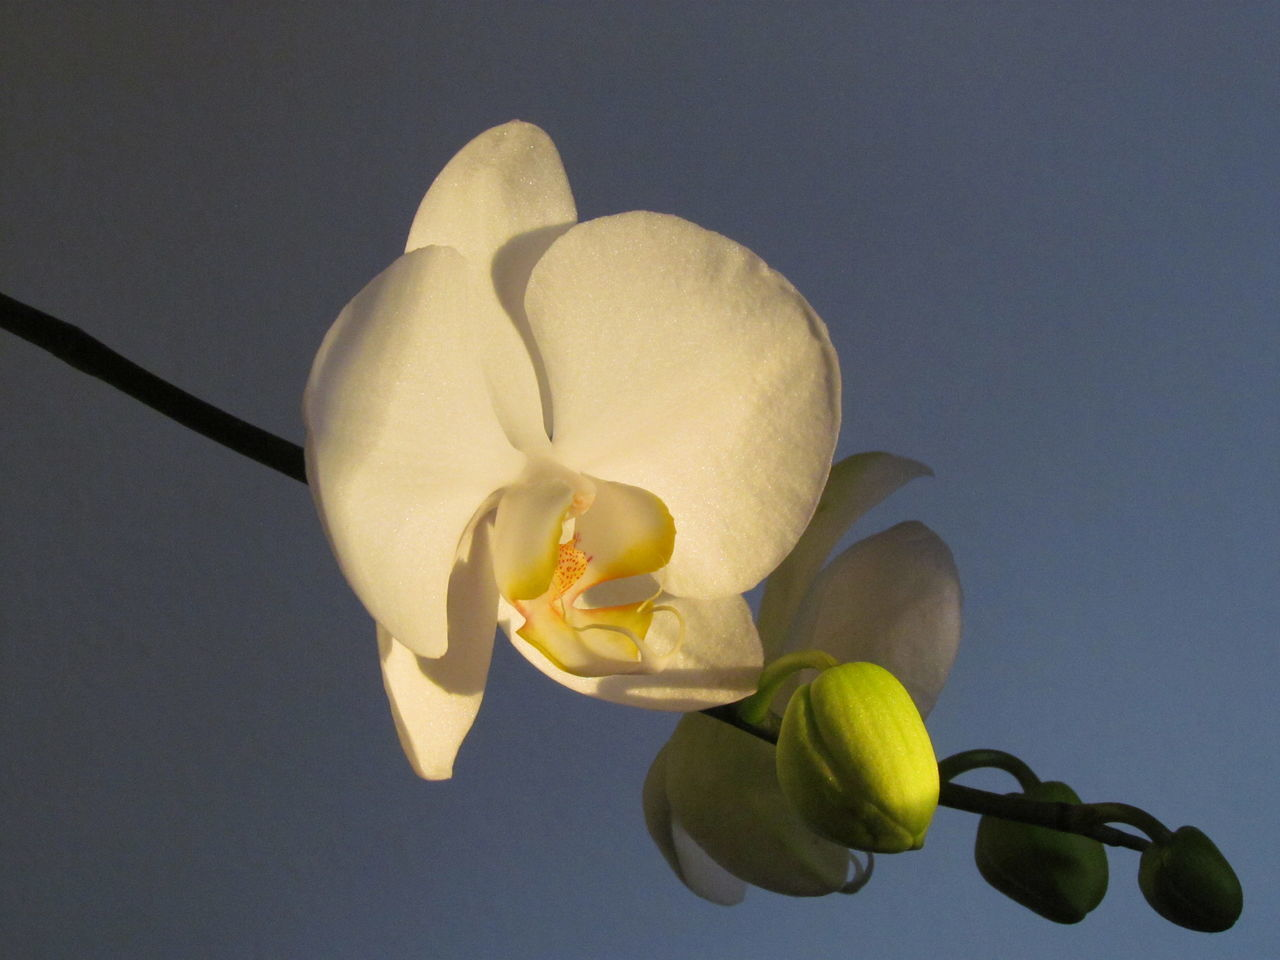 Yellow Studio Shot Close-up No People Fruit Food Healthy Eating Freshness Day Kikosene Orchids Collection EyeEm EyeEm Gallery Orchids Photography Brazil EyeEm Gallery Nature_collection Phalaenopsis Orchid Flower Head Outdoors Petal Fragility Nature Eyeemphotography